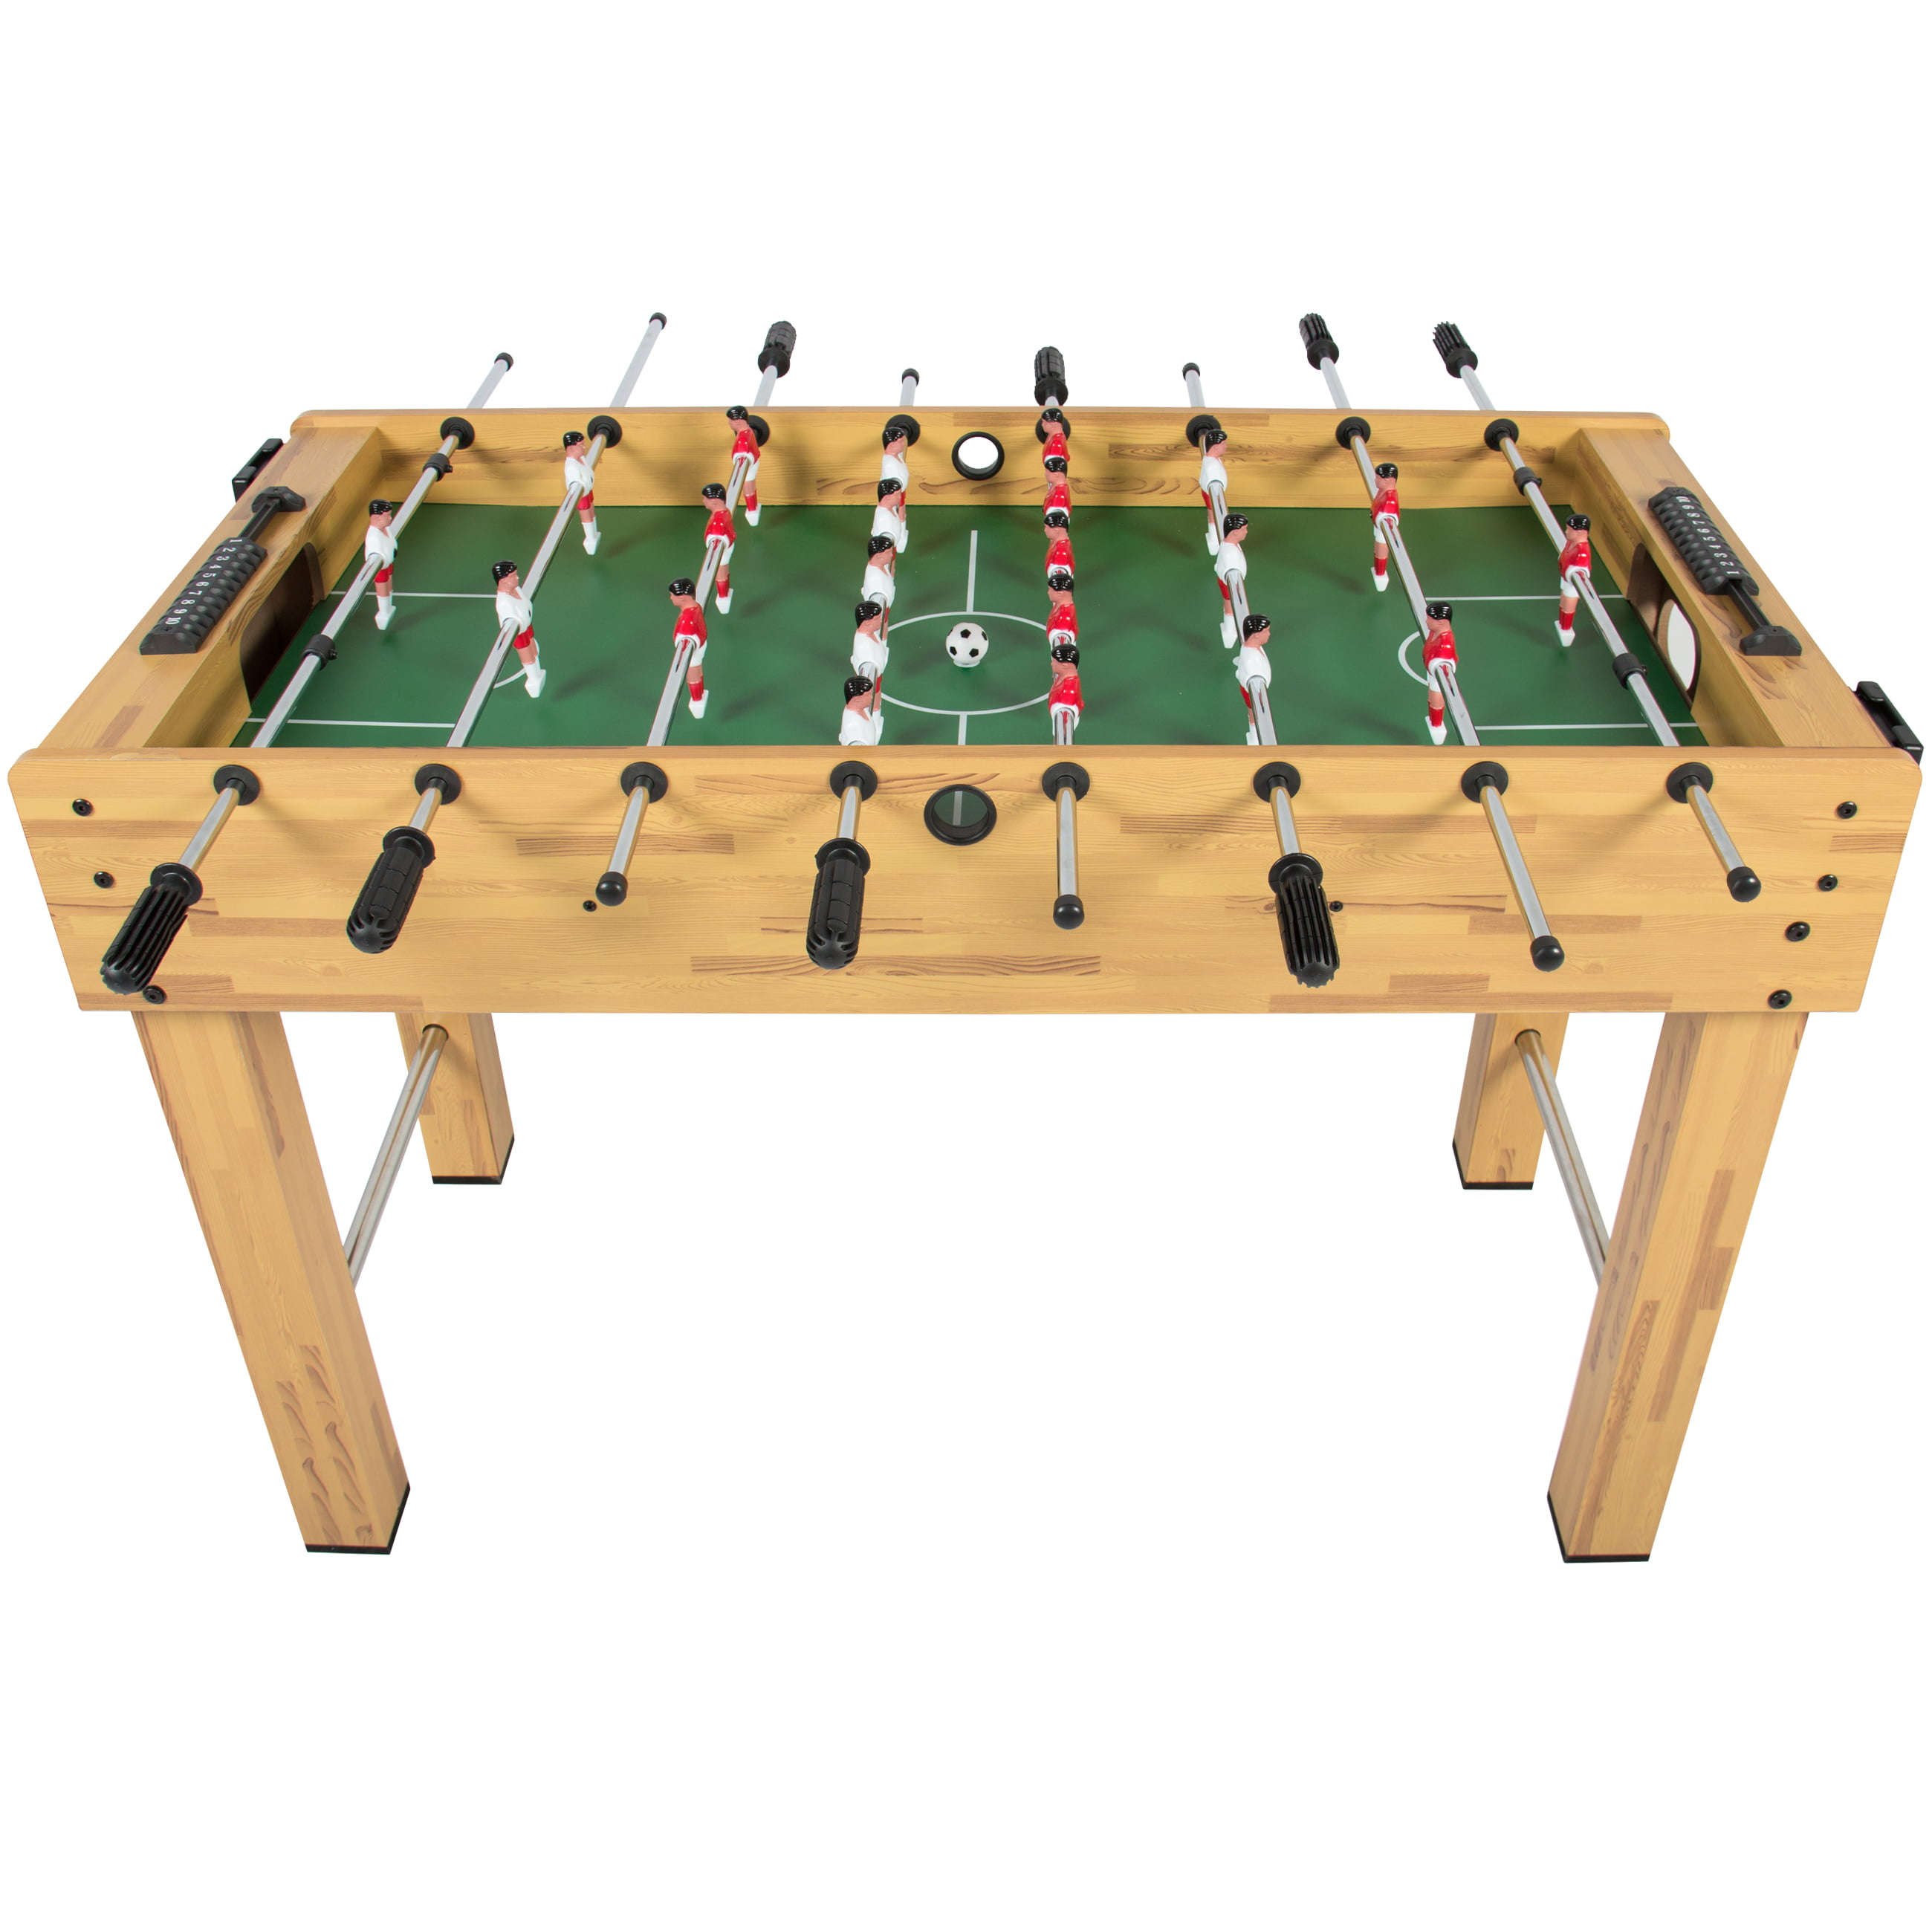 Best Choice Products 48 Foosball Table Compeion Sized Soccer Arcade Room